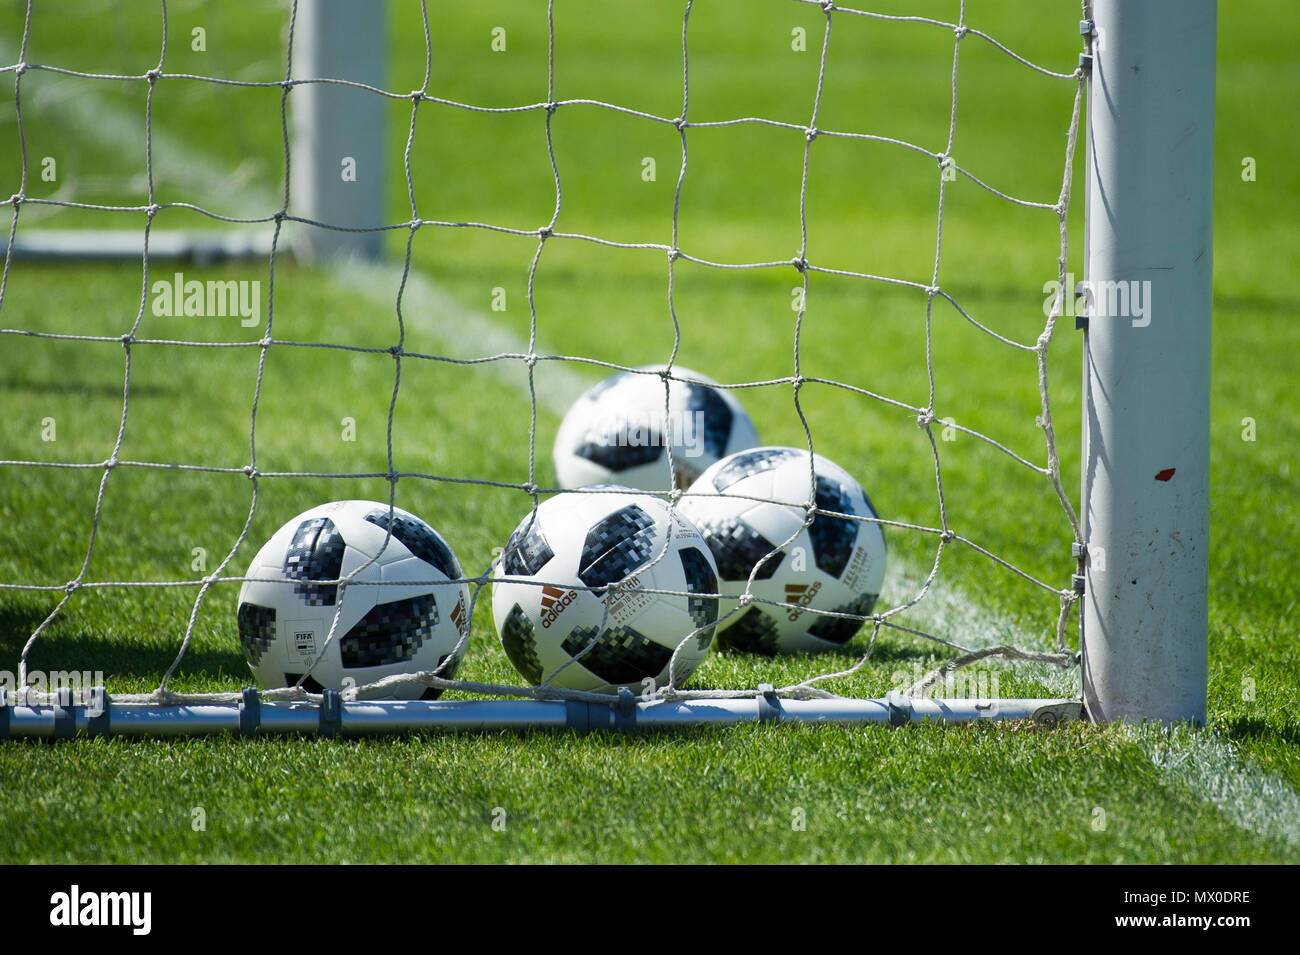 Adidas Telstar 18 is the official match ball of the 2018 FIFA World Cup in Russia May 23rd 2018 © Wojciech Strozyk / Alamy Stock Photo - Stock Image